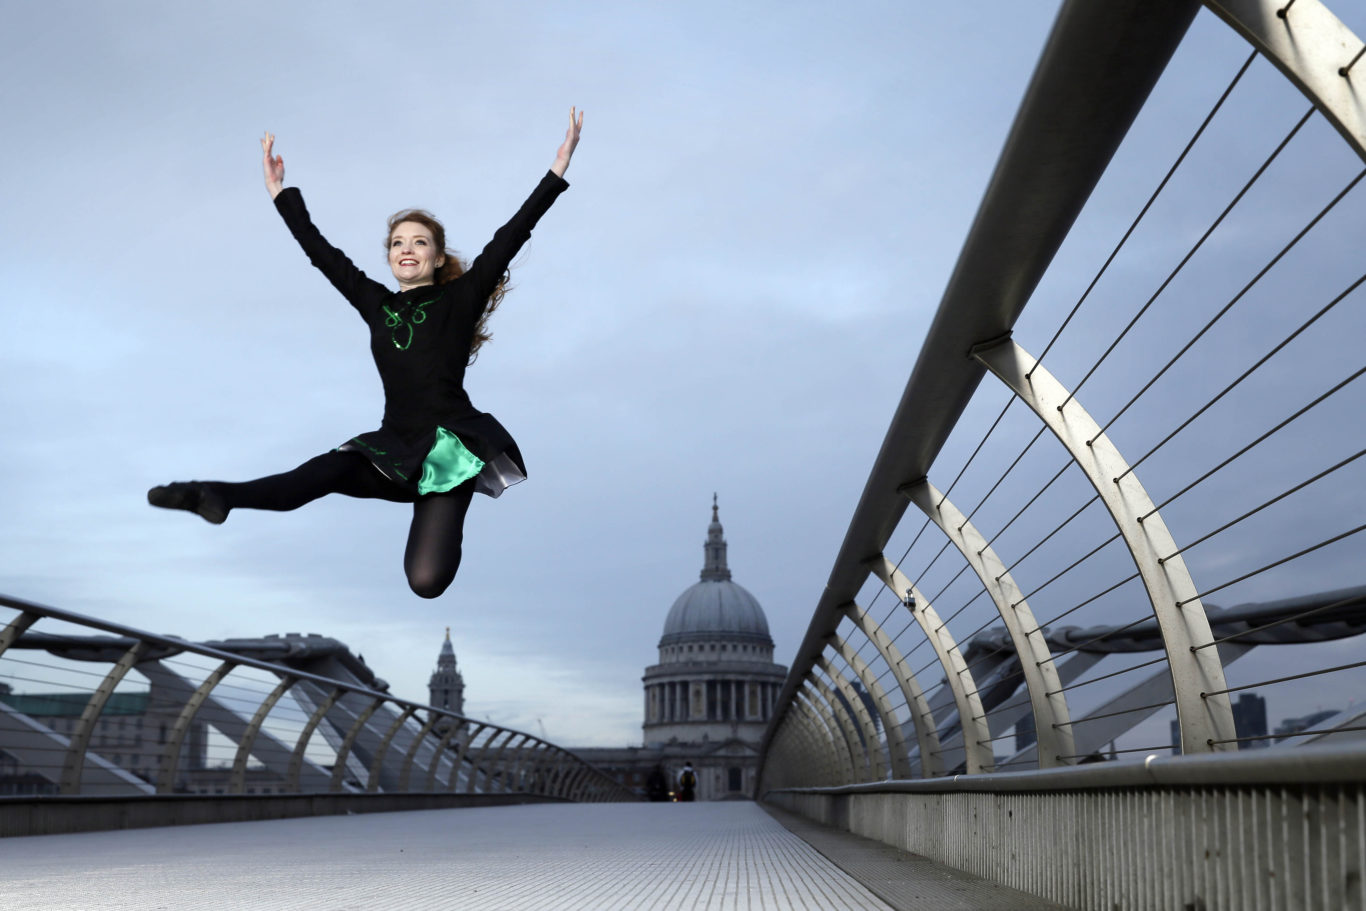 Irish dancers perform on London's Millennium Bridge (Tim Ireland/PA)